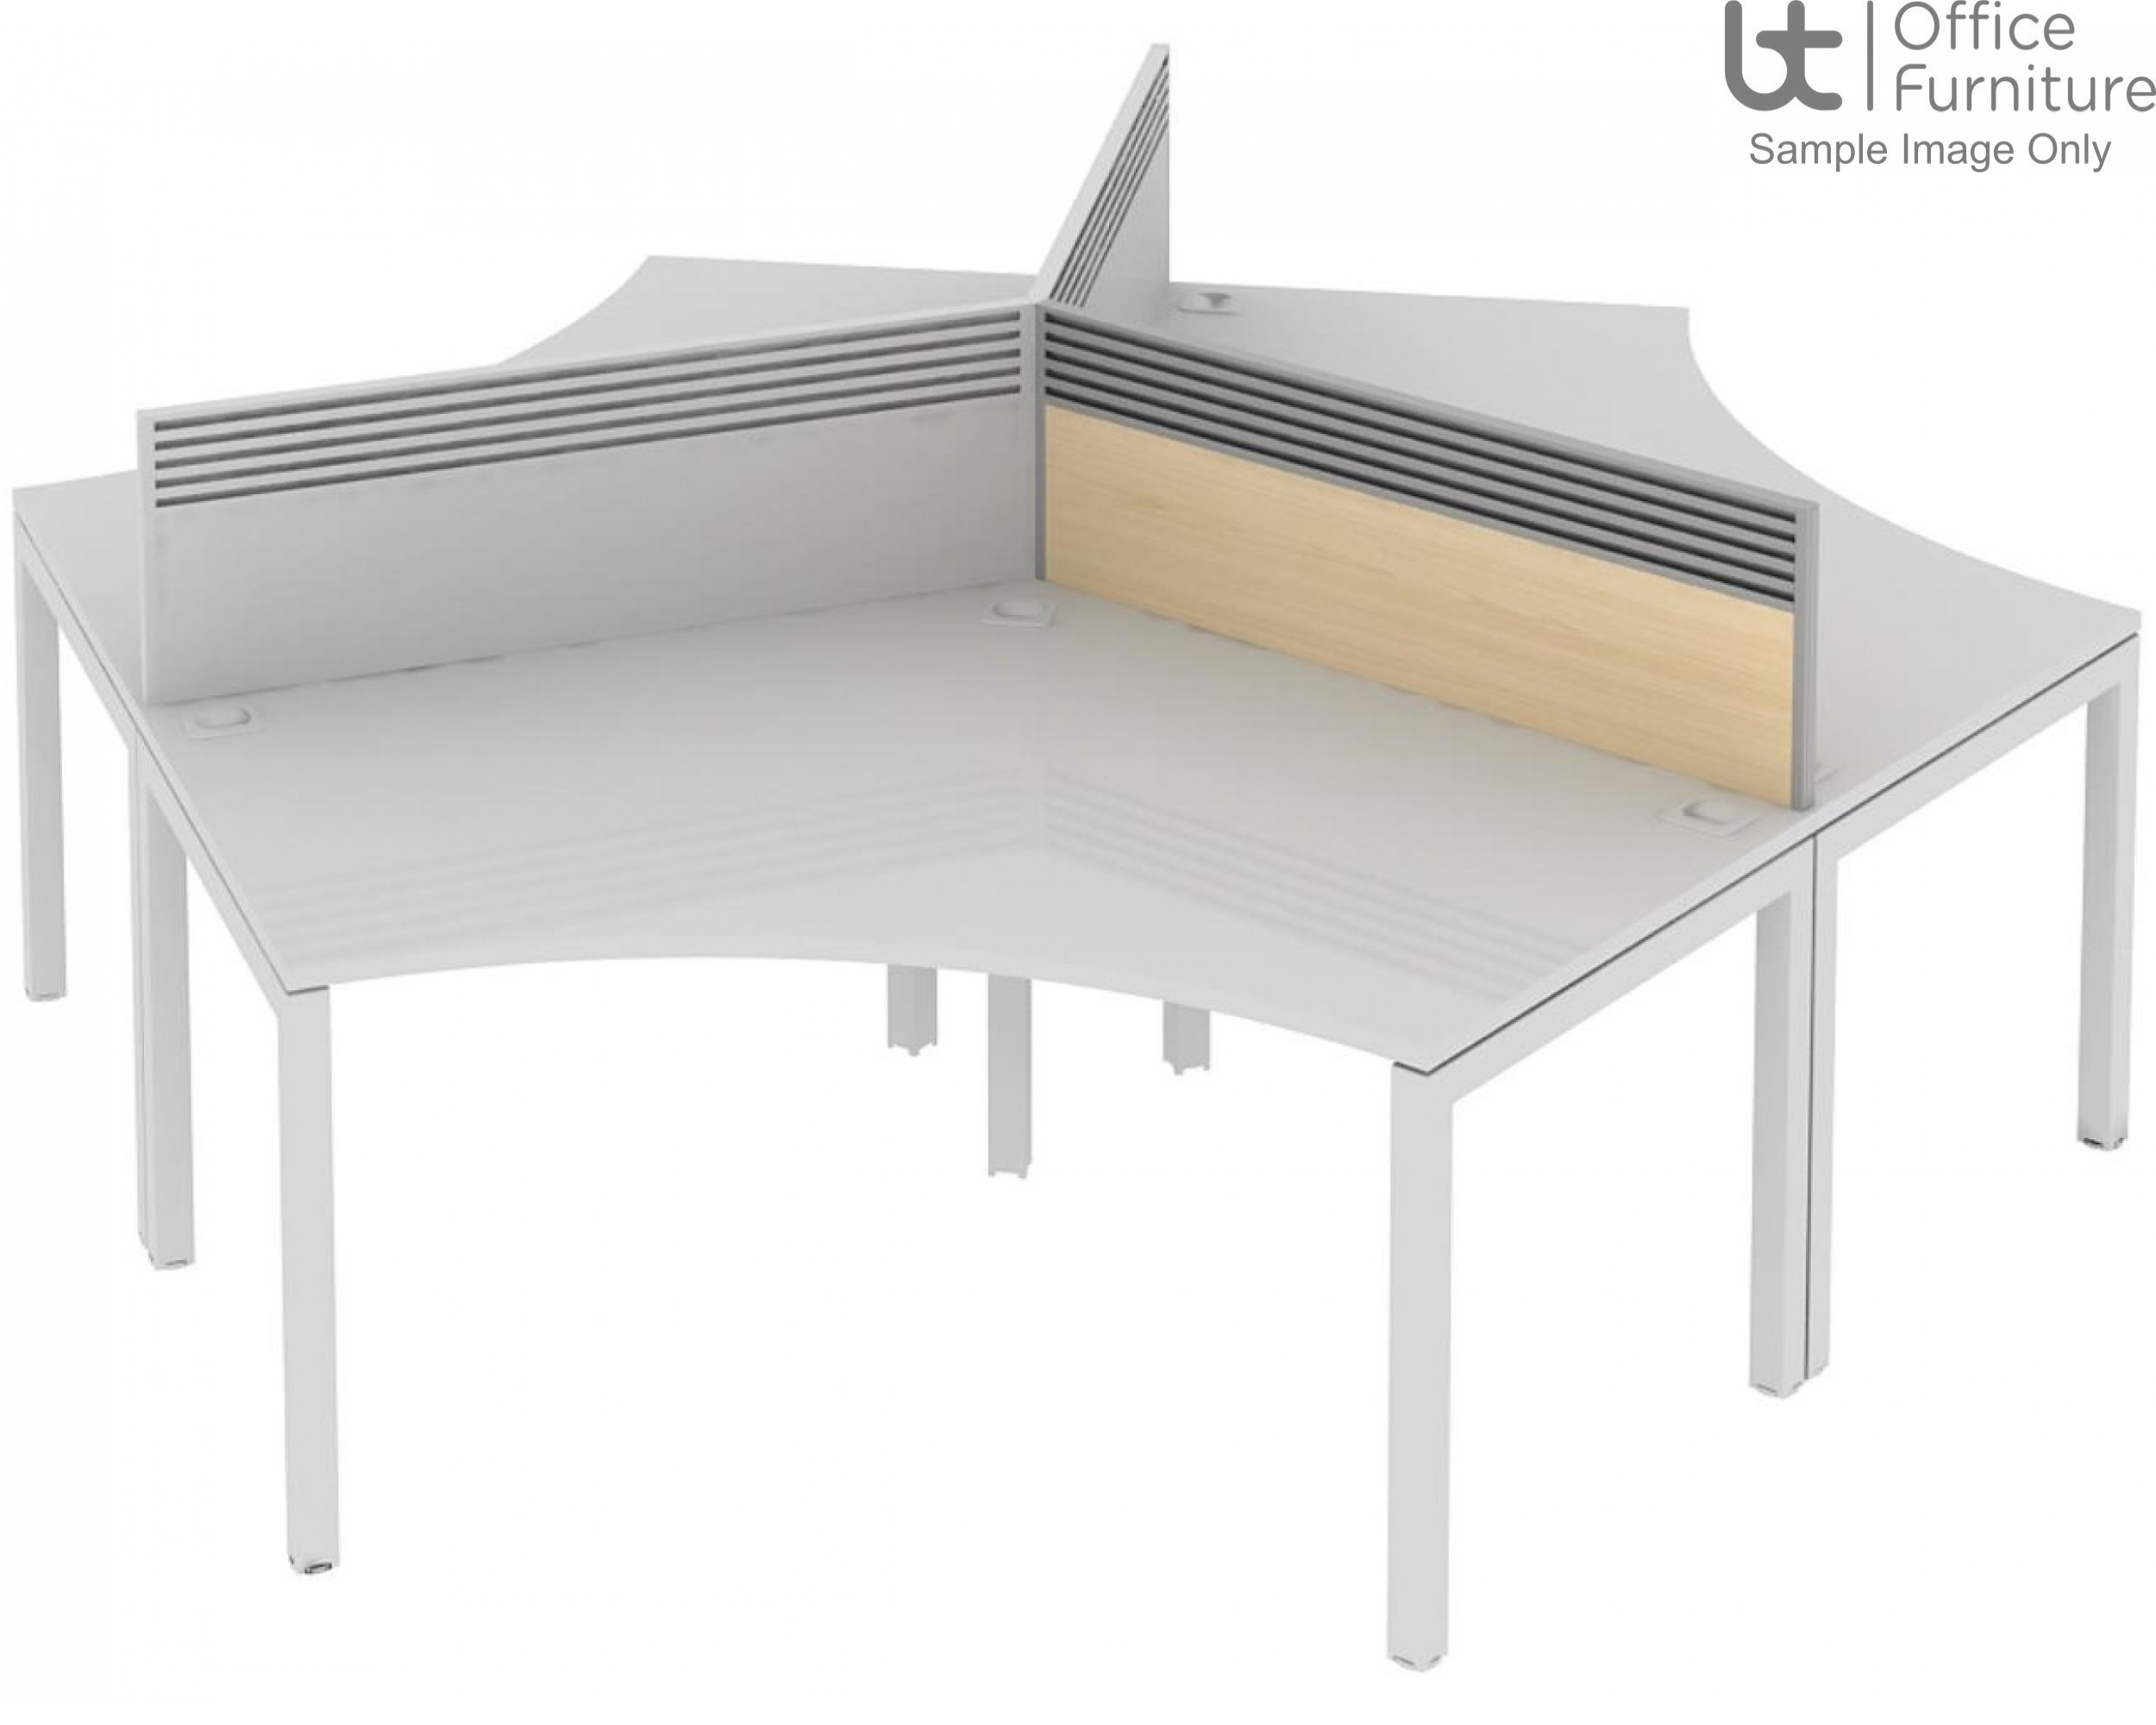 Elite Matrix Screen - MFC (Fixed Height) 120 Degree System Screen with Management Rail